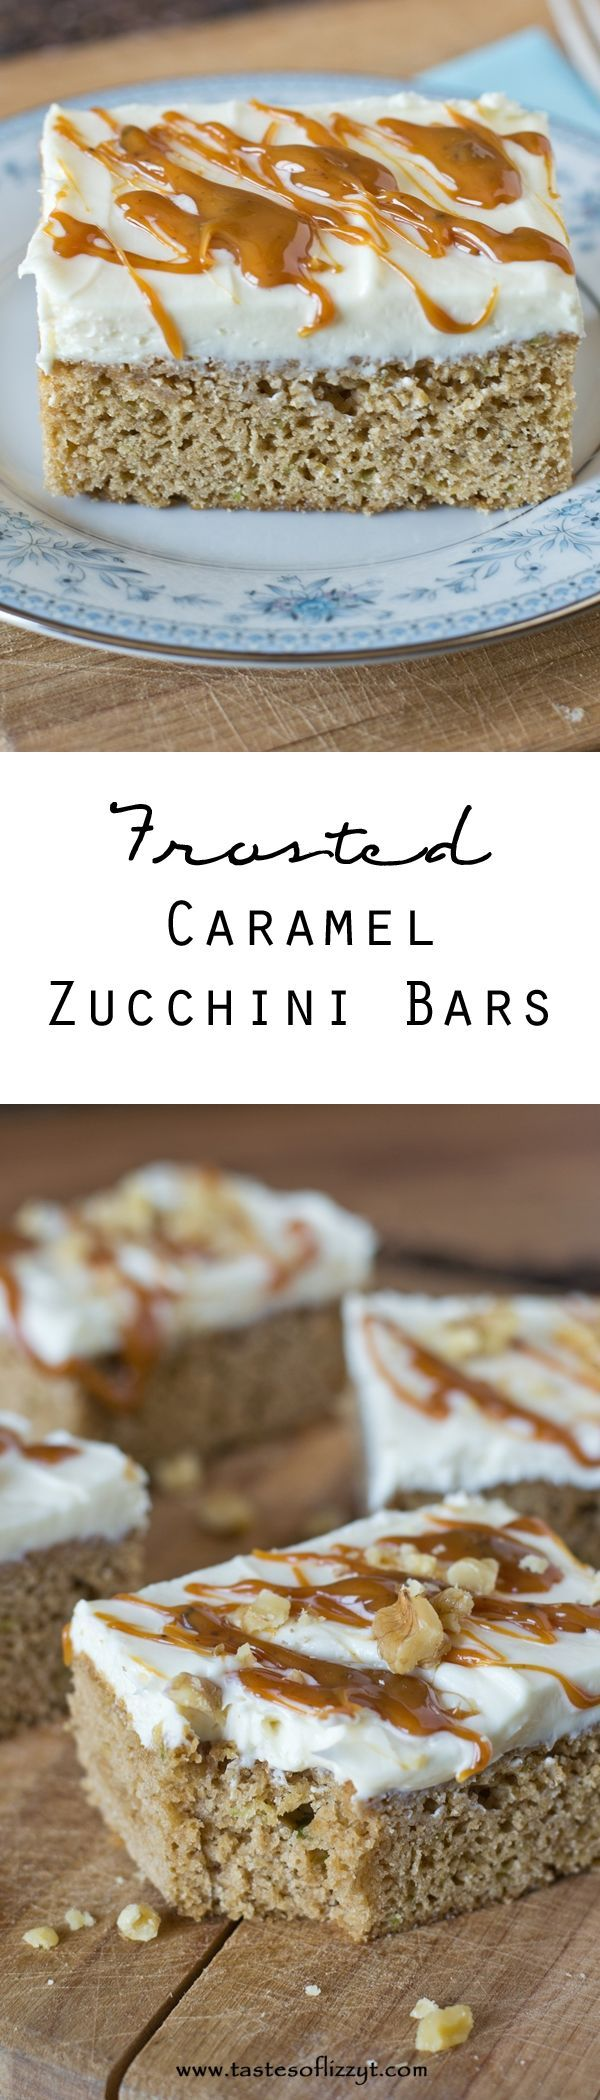 Frosted Caramel Zucchini Bars. Use up your overabundance of garden zucchini in these simple 5 ingredient cake mix bars. The caramel cake mix matches perfectly with the cream cheese frosting.